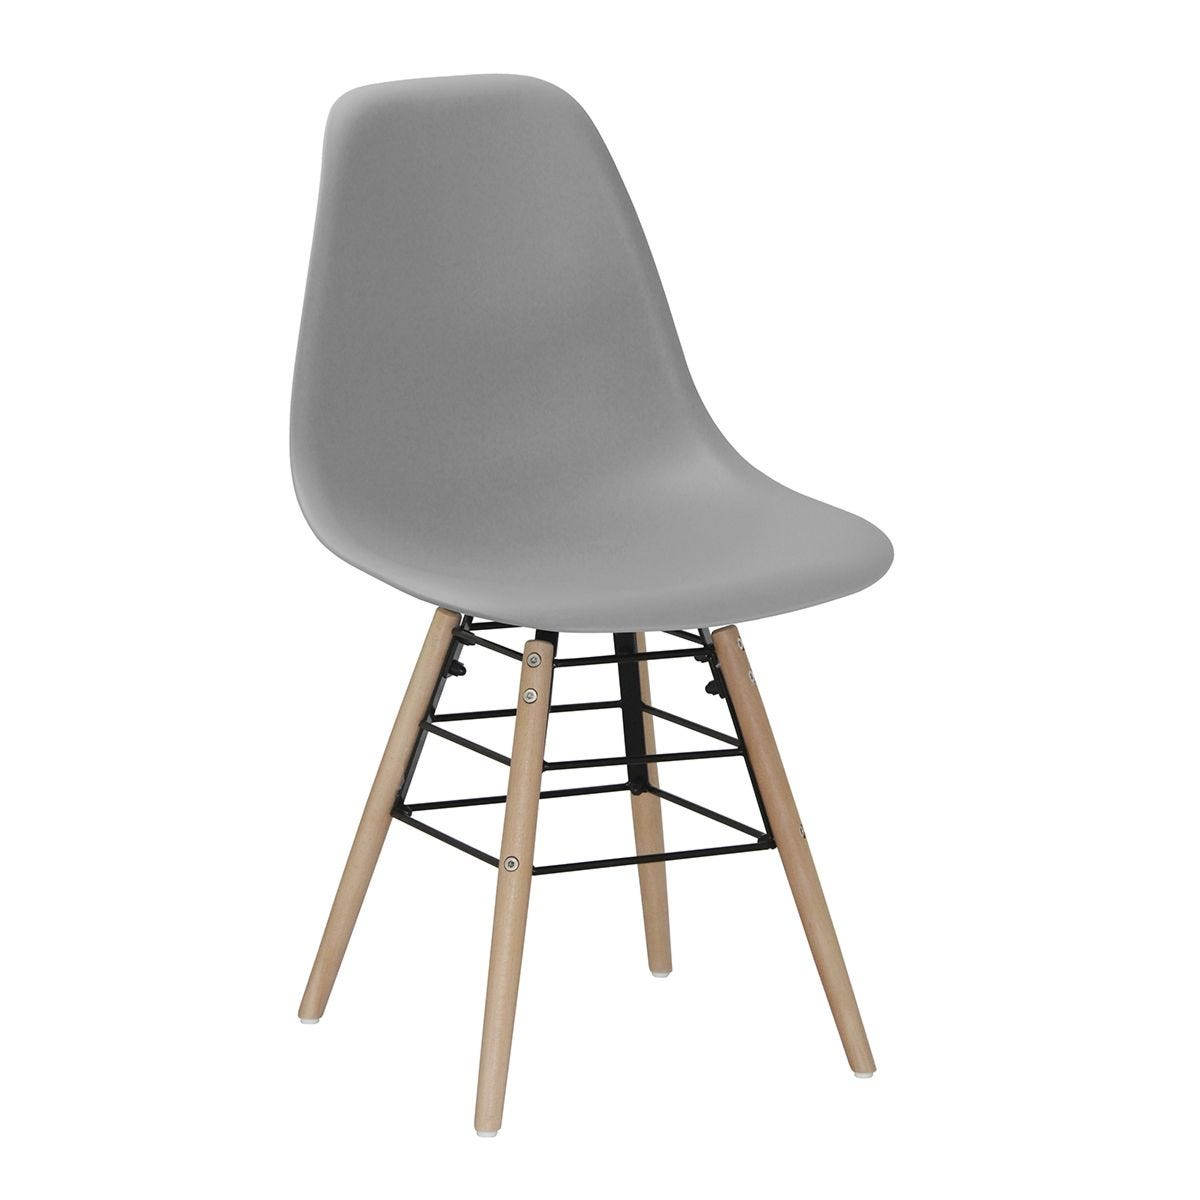 Set Of 4 Lilly Plastic Chairs with Solid Beech Legs - Light Grey